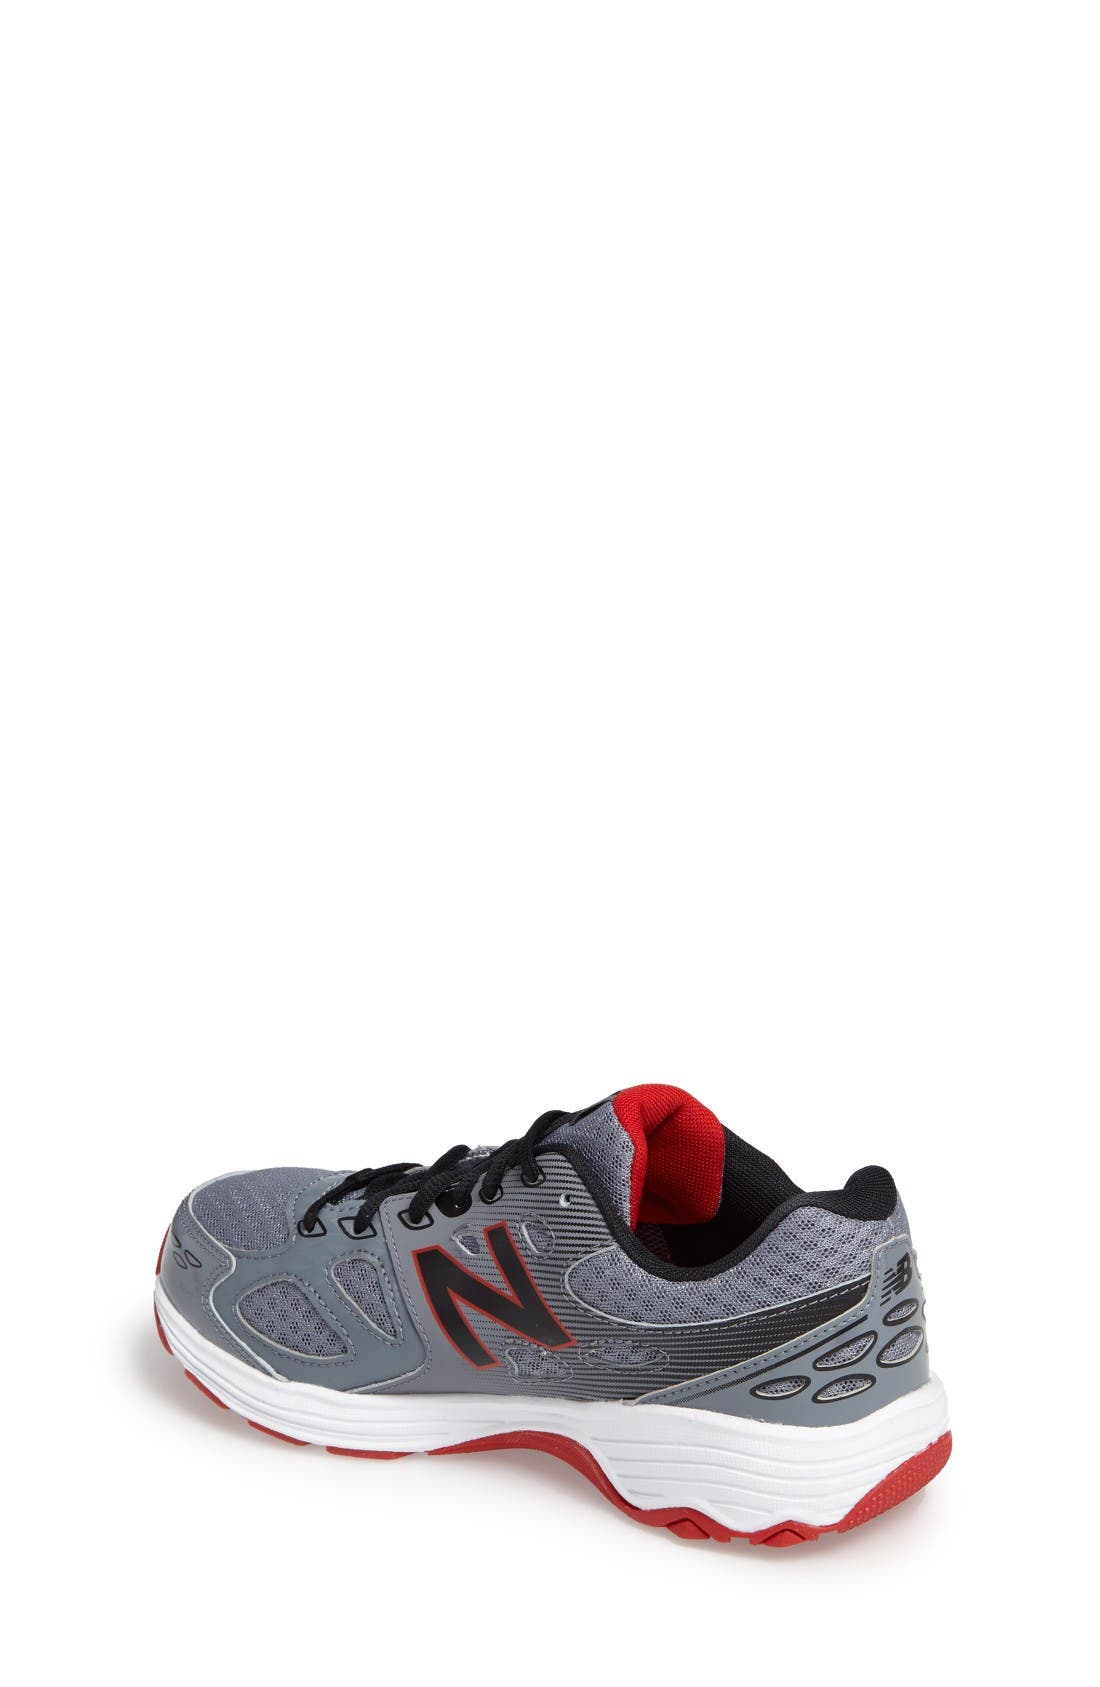 Alternate Image 2  - New Balance 680v3 Sneaker (Toddler, Little Kid & Big Kid)